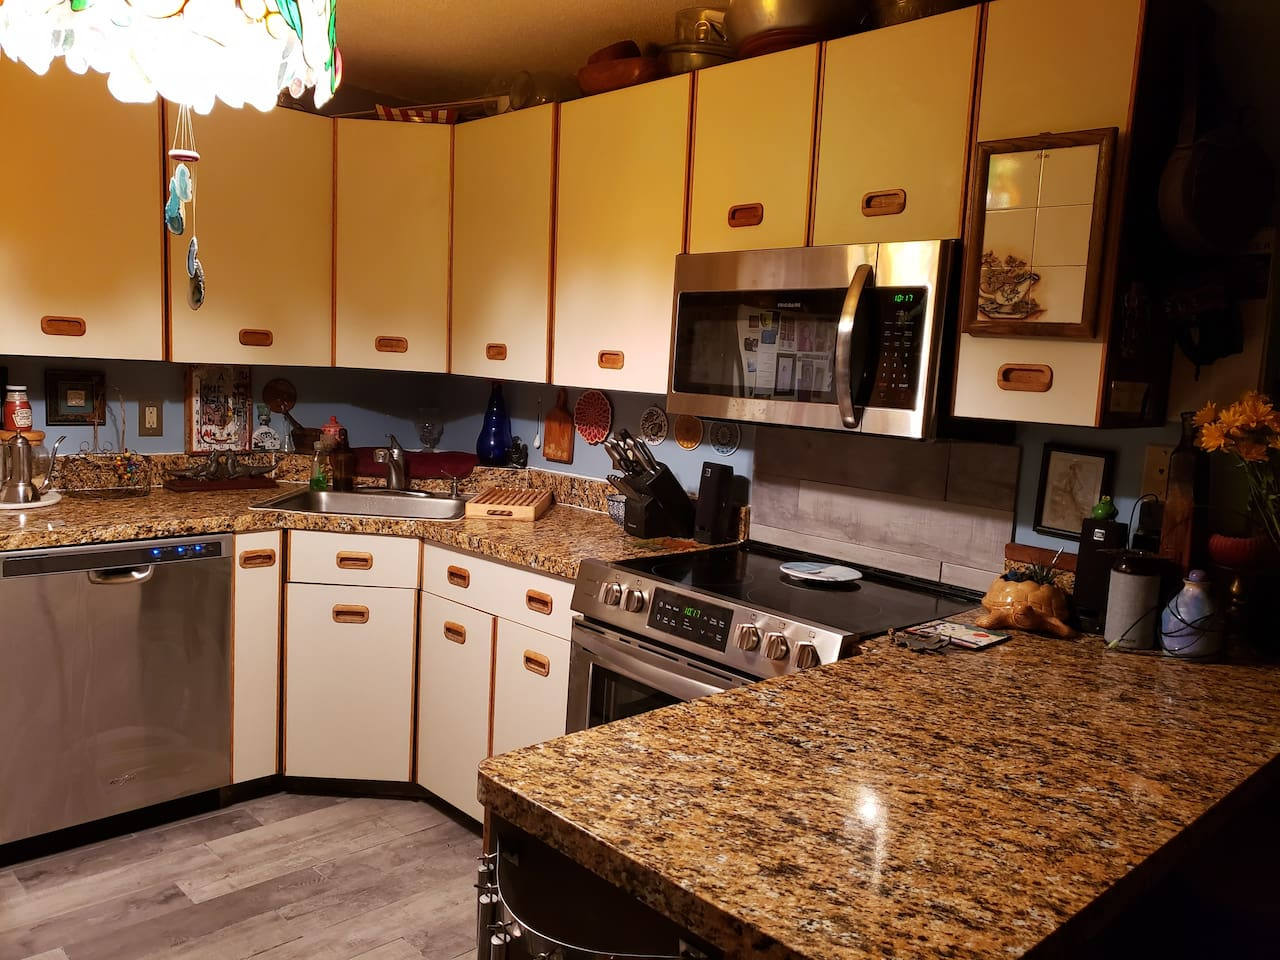 Fully equipped kitchen with new appliances. All guests are able to use kitchen at anytime.